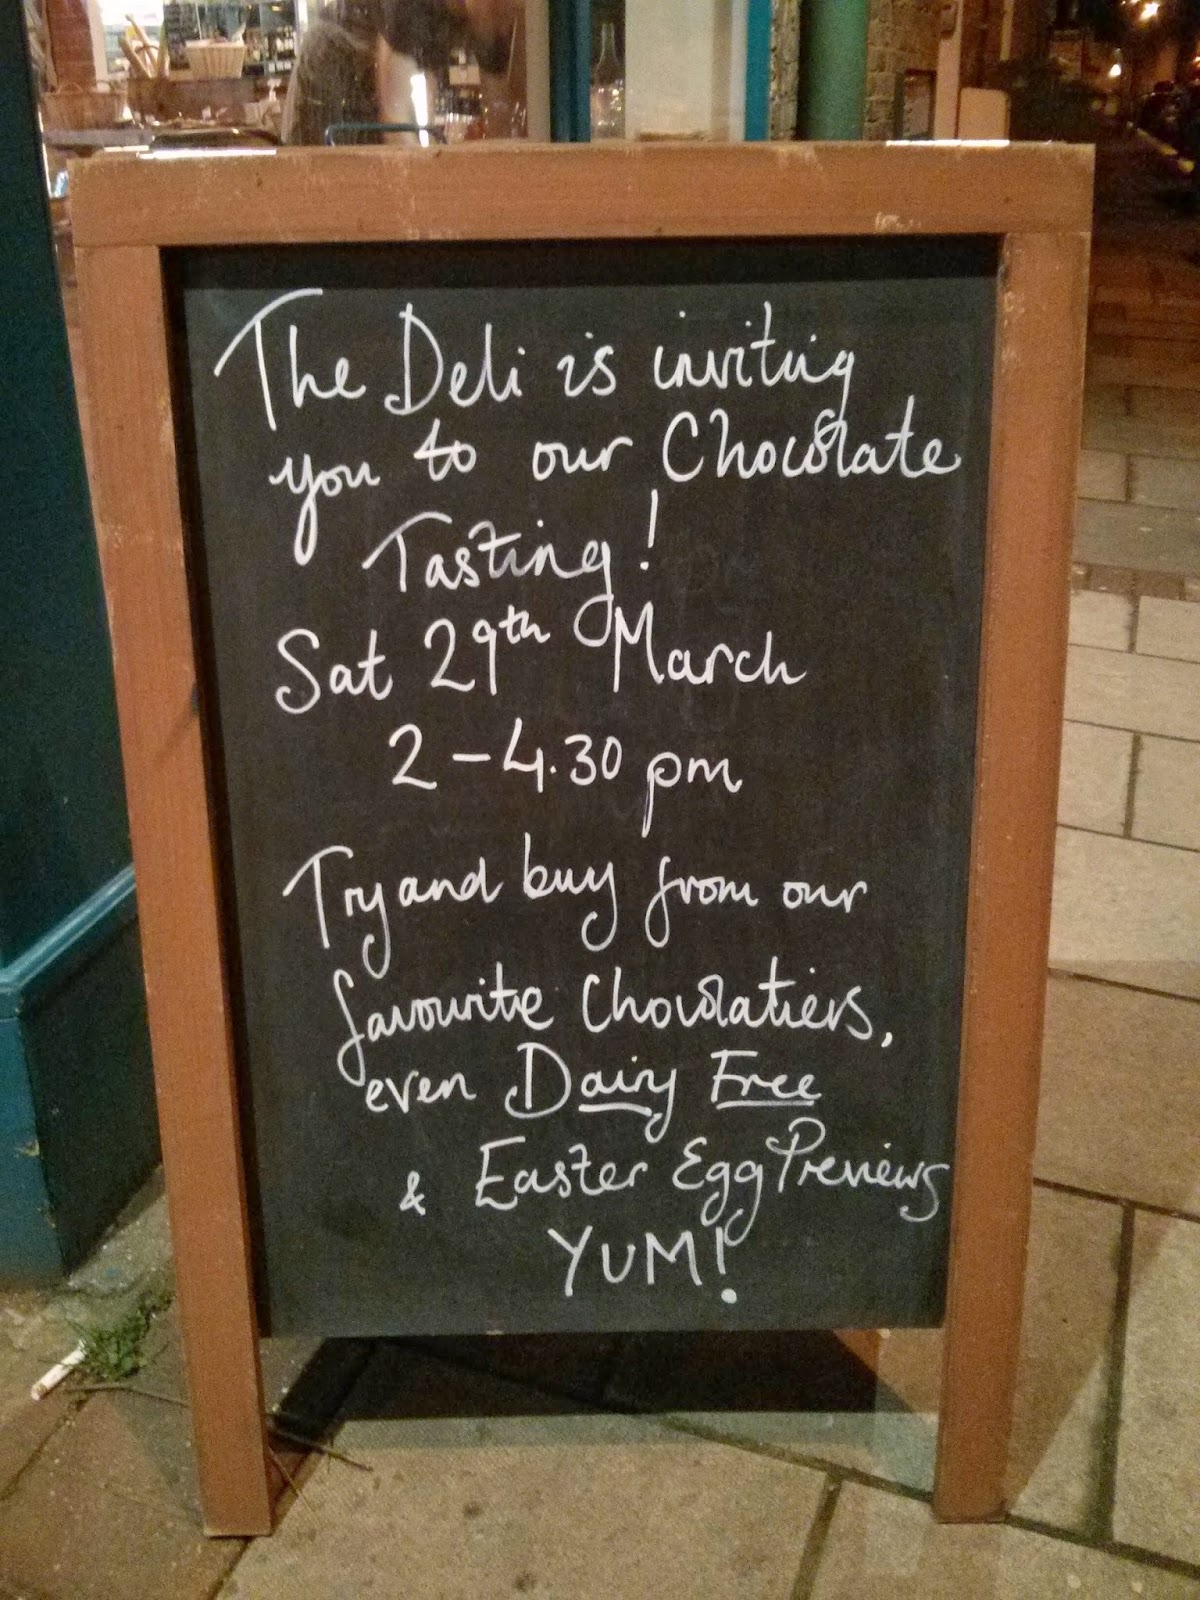 Unique Go Earlsfield March  With Luxury The Earlsfield Deli Is Inviting Those With A Penchant For Chocolate A  Niche Market But Im Sure Theyll Make A Go Of It To A Chocolate  Tasting This  With Attractive Palmers Garden Centre Pakuranga Also Morrisons In Welwyn Garden City In Addition Kew Gardens Car Park And Garden Business For Sale As Well As Ming Garden Wedding Package Additionally Log Cabins For Gardens From Goearlsfieldblogspotcom With   Attractive Go Earlsfield March  With Unique Garden Business For Sale As Well As Ming Garden Wedding Package Additionally Log Cabins For Gardens And Luxury The Earlsfield Deli Is Inviting Those With A Penchant For Chocolate A  Niche Market But Im Sure Theyll Make A Go Of It To A Chocolate  Tasting This  Via Goearlsfieldblogspotcom